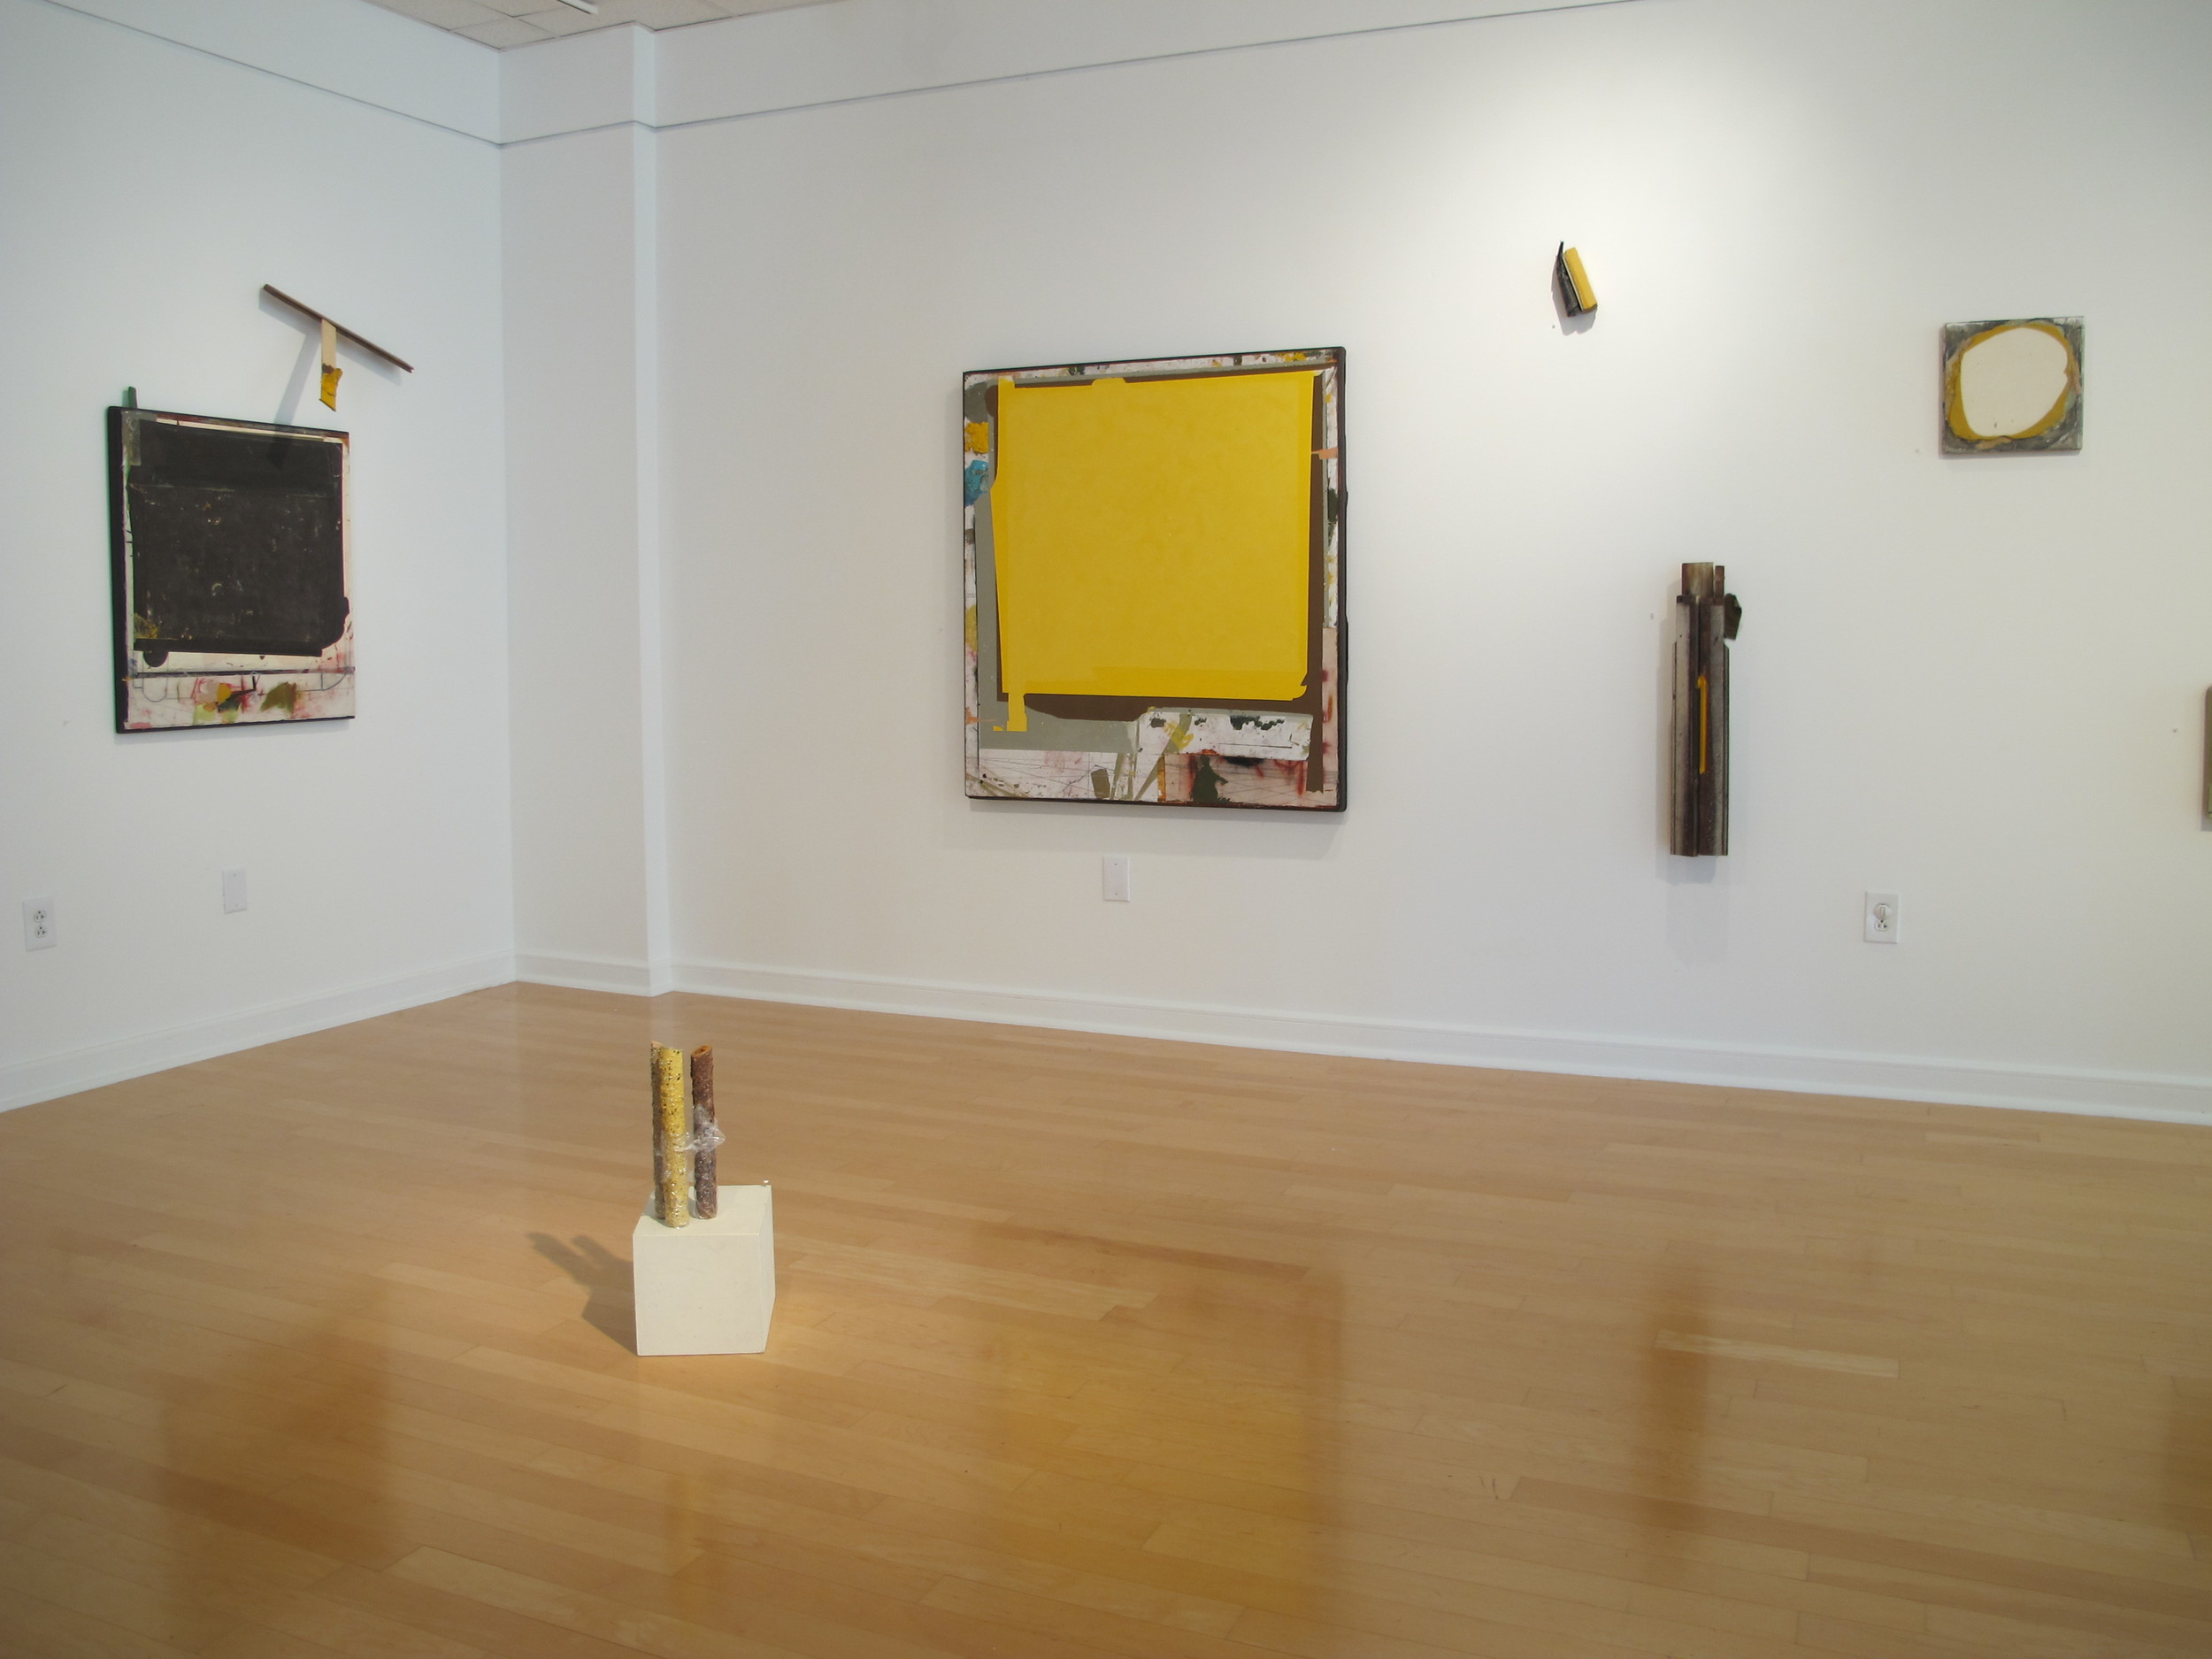 Community of Flat Faces , mixed media works by Edgar Sanchez Cumbas, in Gallery 221@HCC; see review below.